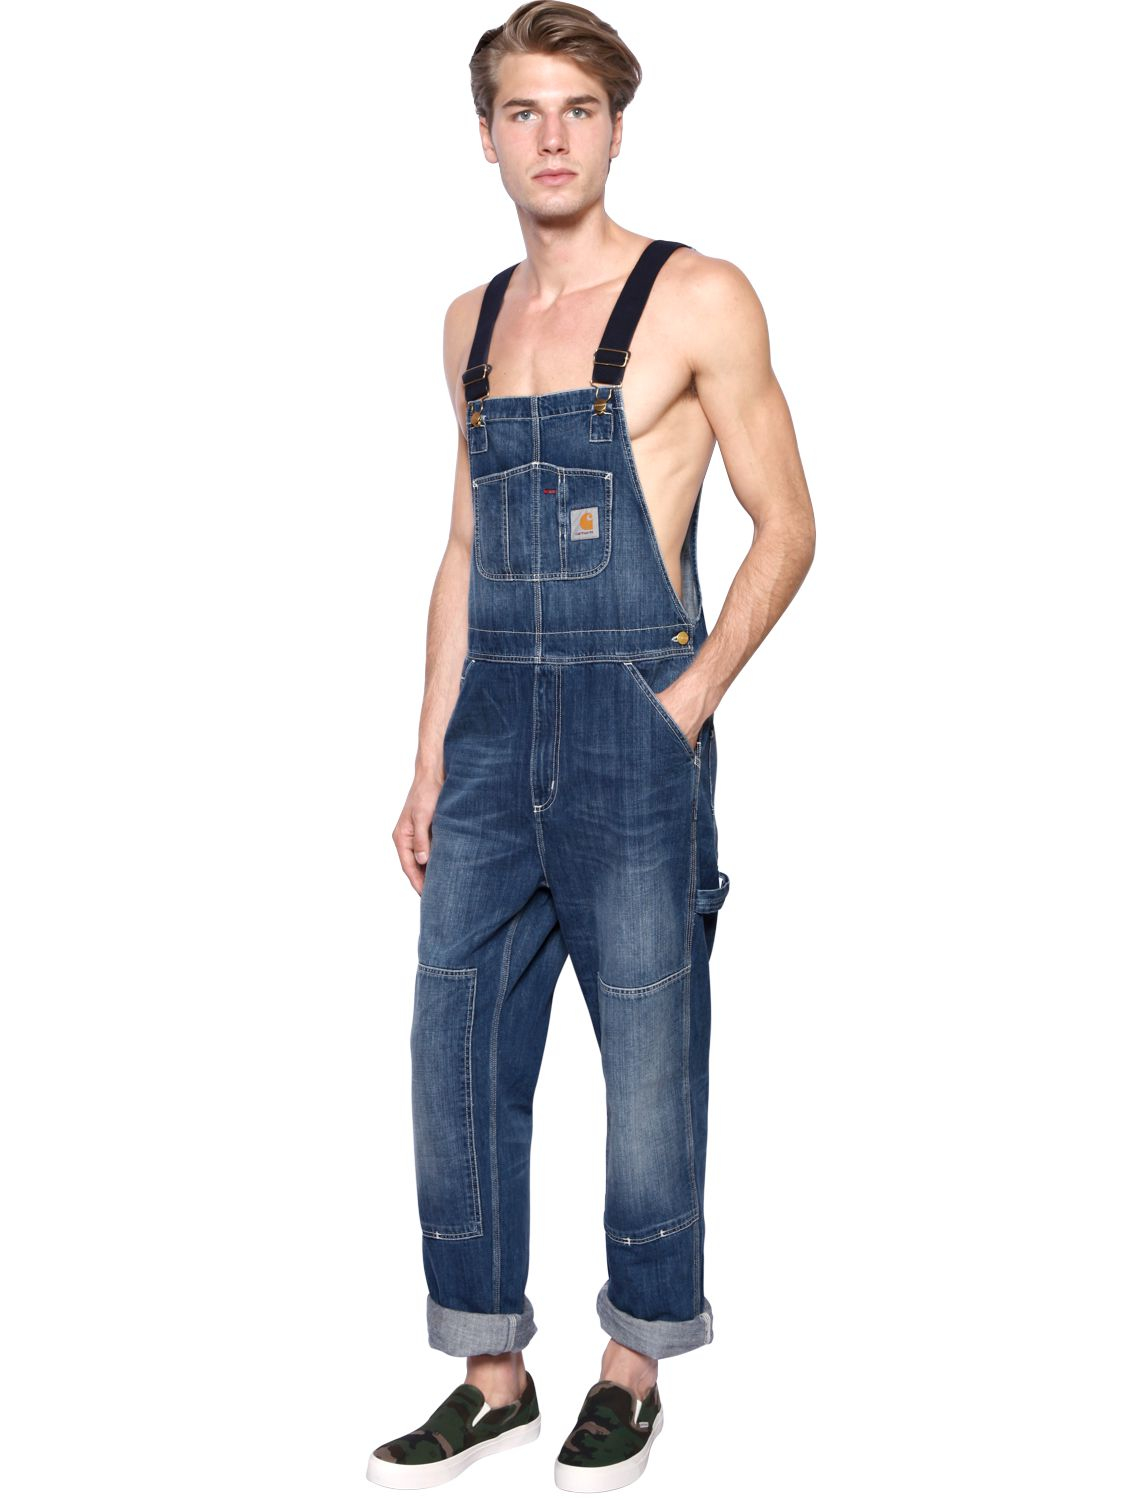 Carhartt Men's Denim Bib Overalls are the perfect workwear choice for any season. Made of oz., % rigid denim, it features multiple tool and utility pockets, hammer loop and front elastic suspenders/5(35).